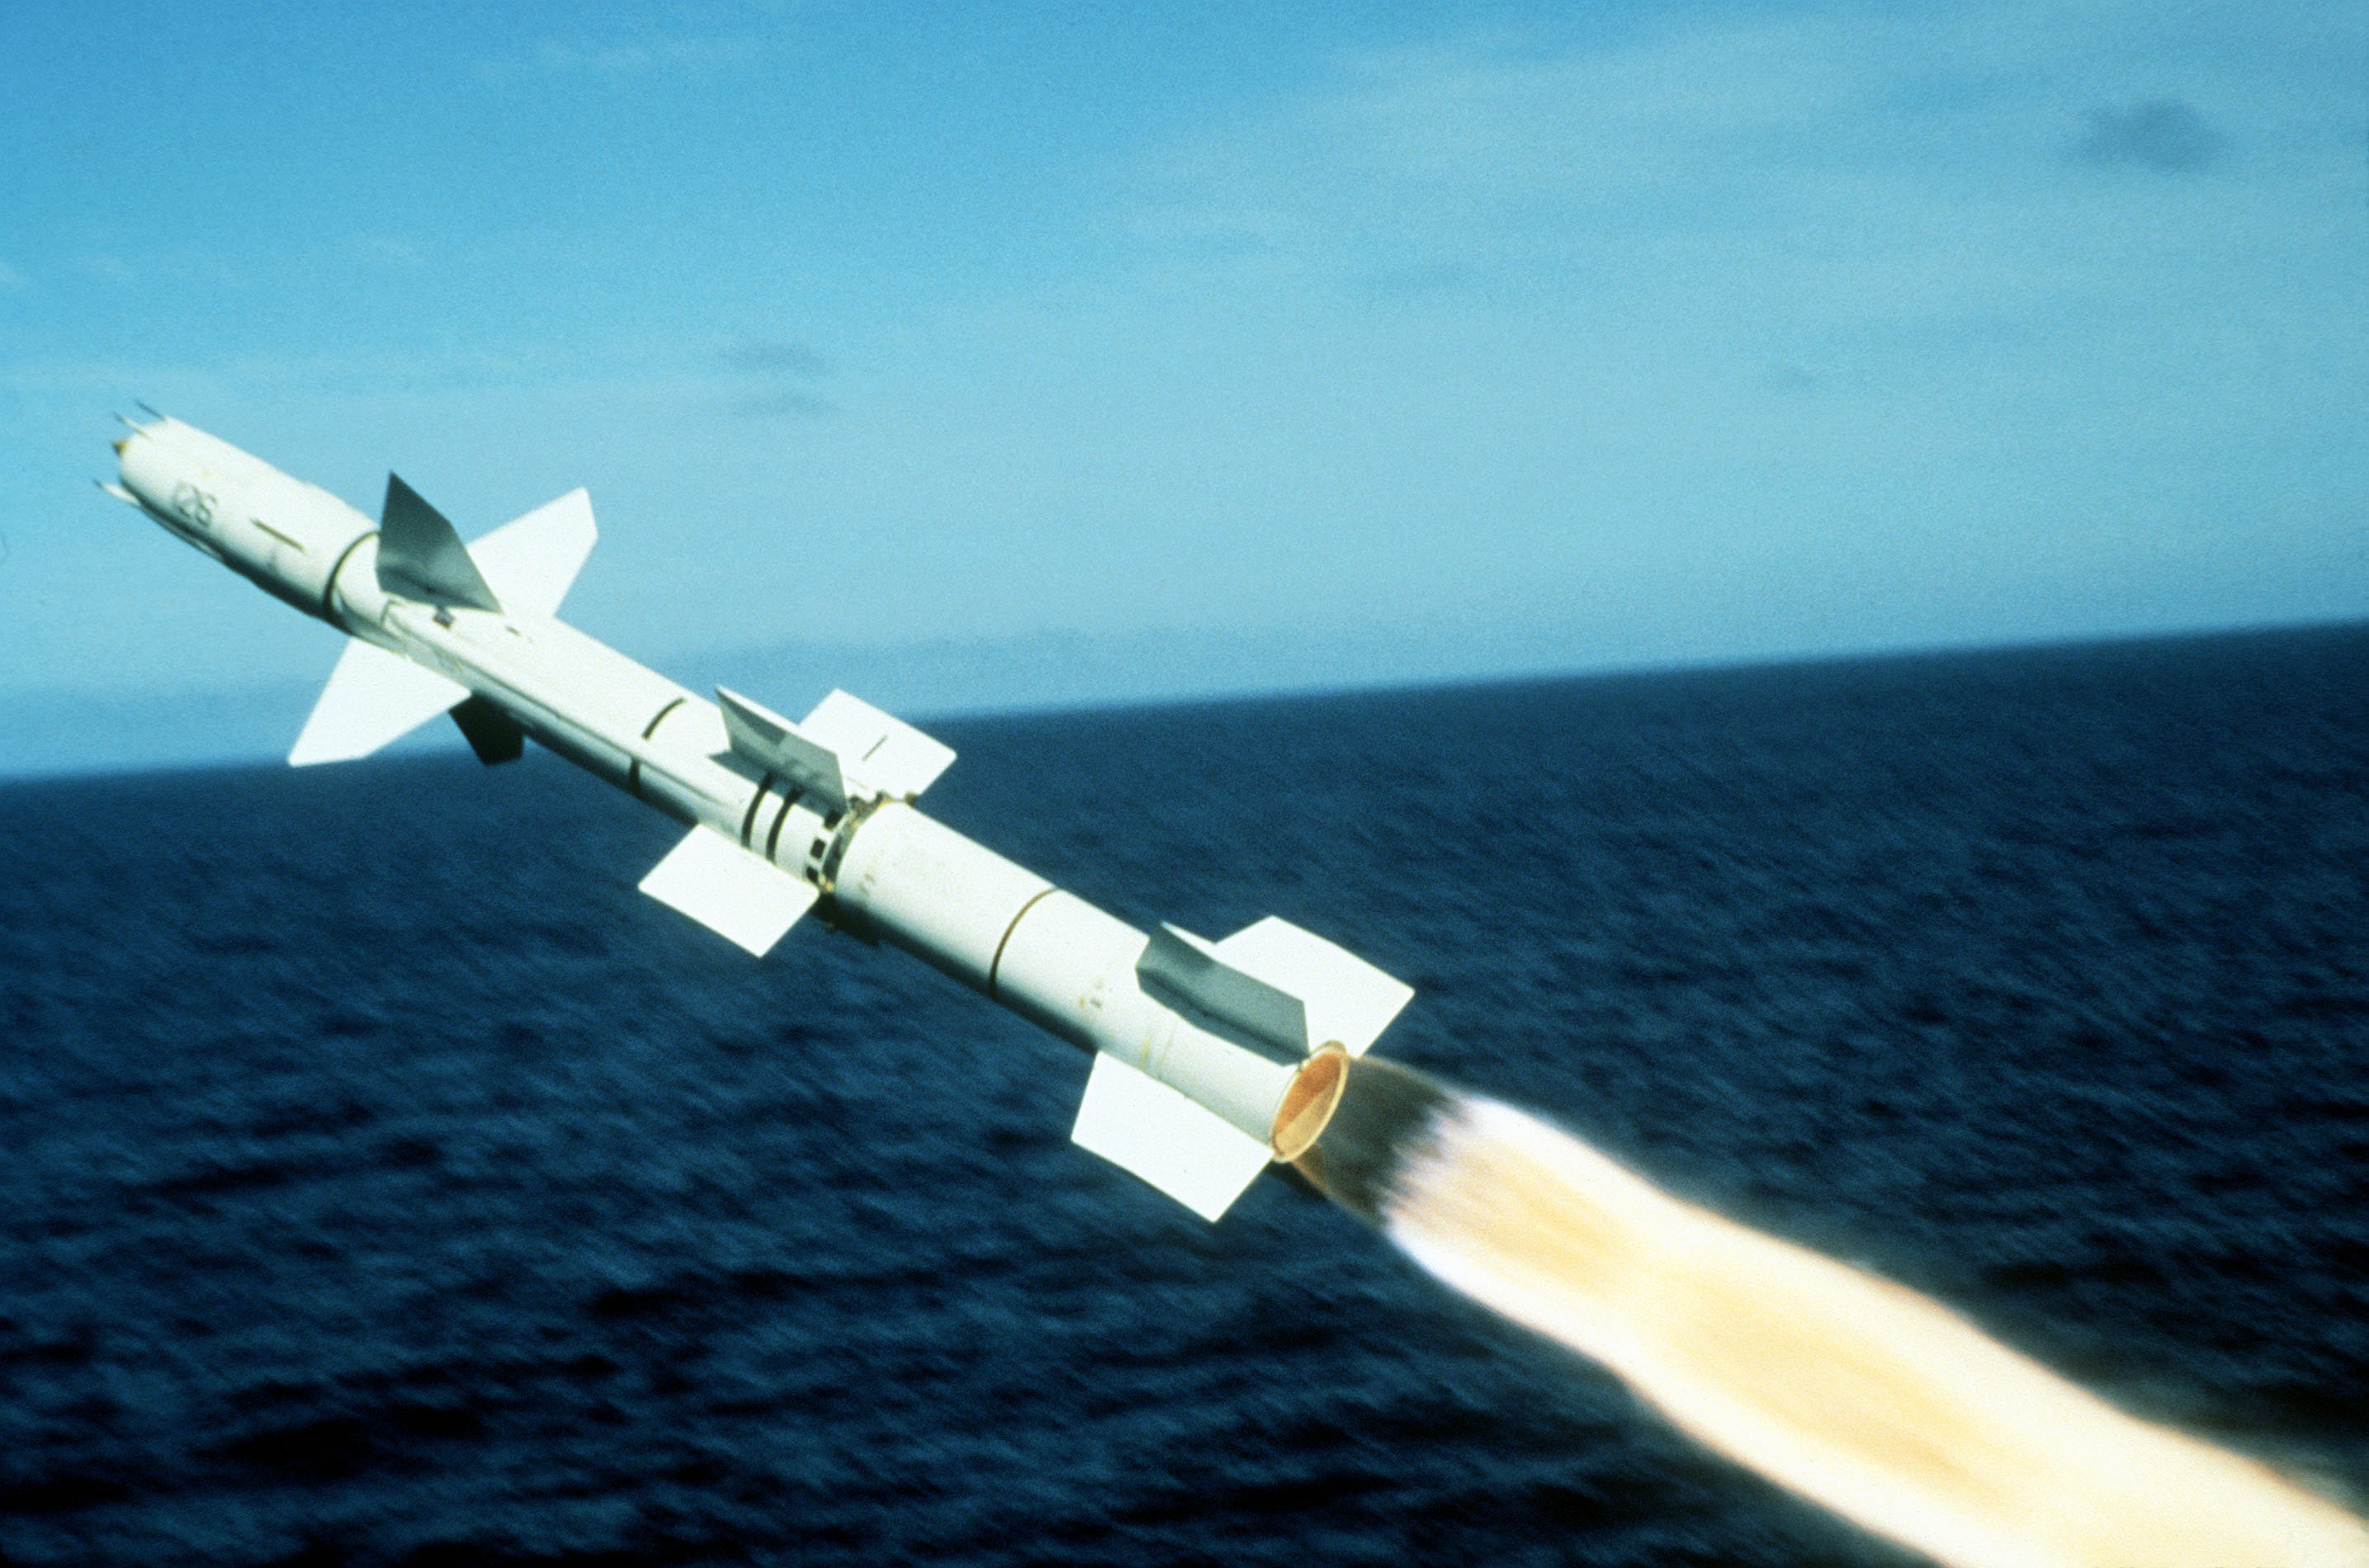 http://upload.wikimedia.org/wikipedia/commons/7/7b/Final_US_Navy_RIM-8_Talos_firing_1979.jpg